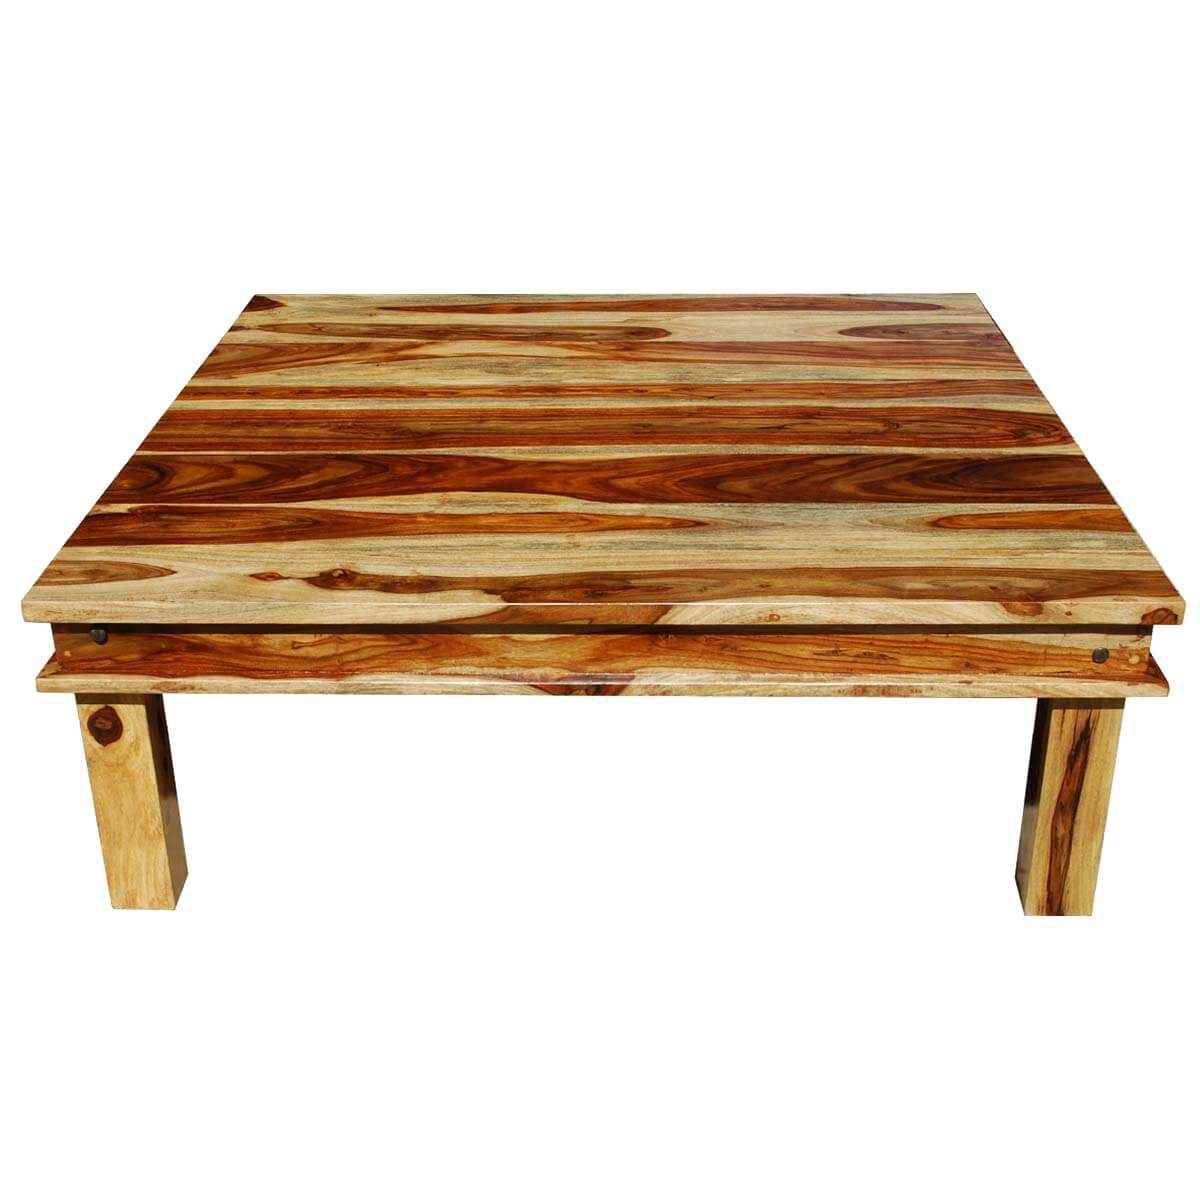 Coffee Wood Table Large Square Wood Rustic Coffee Table